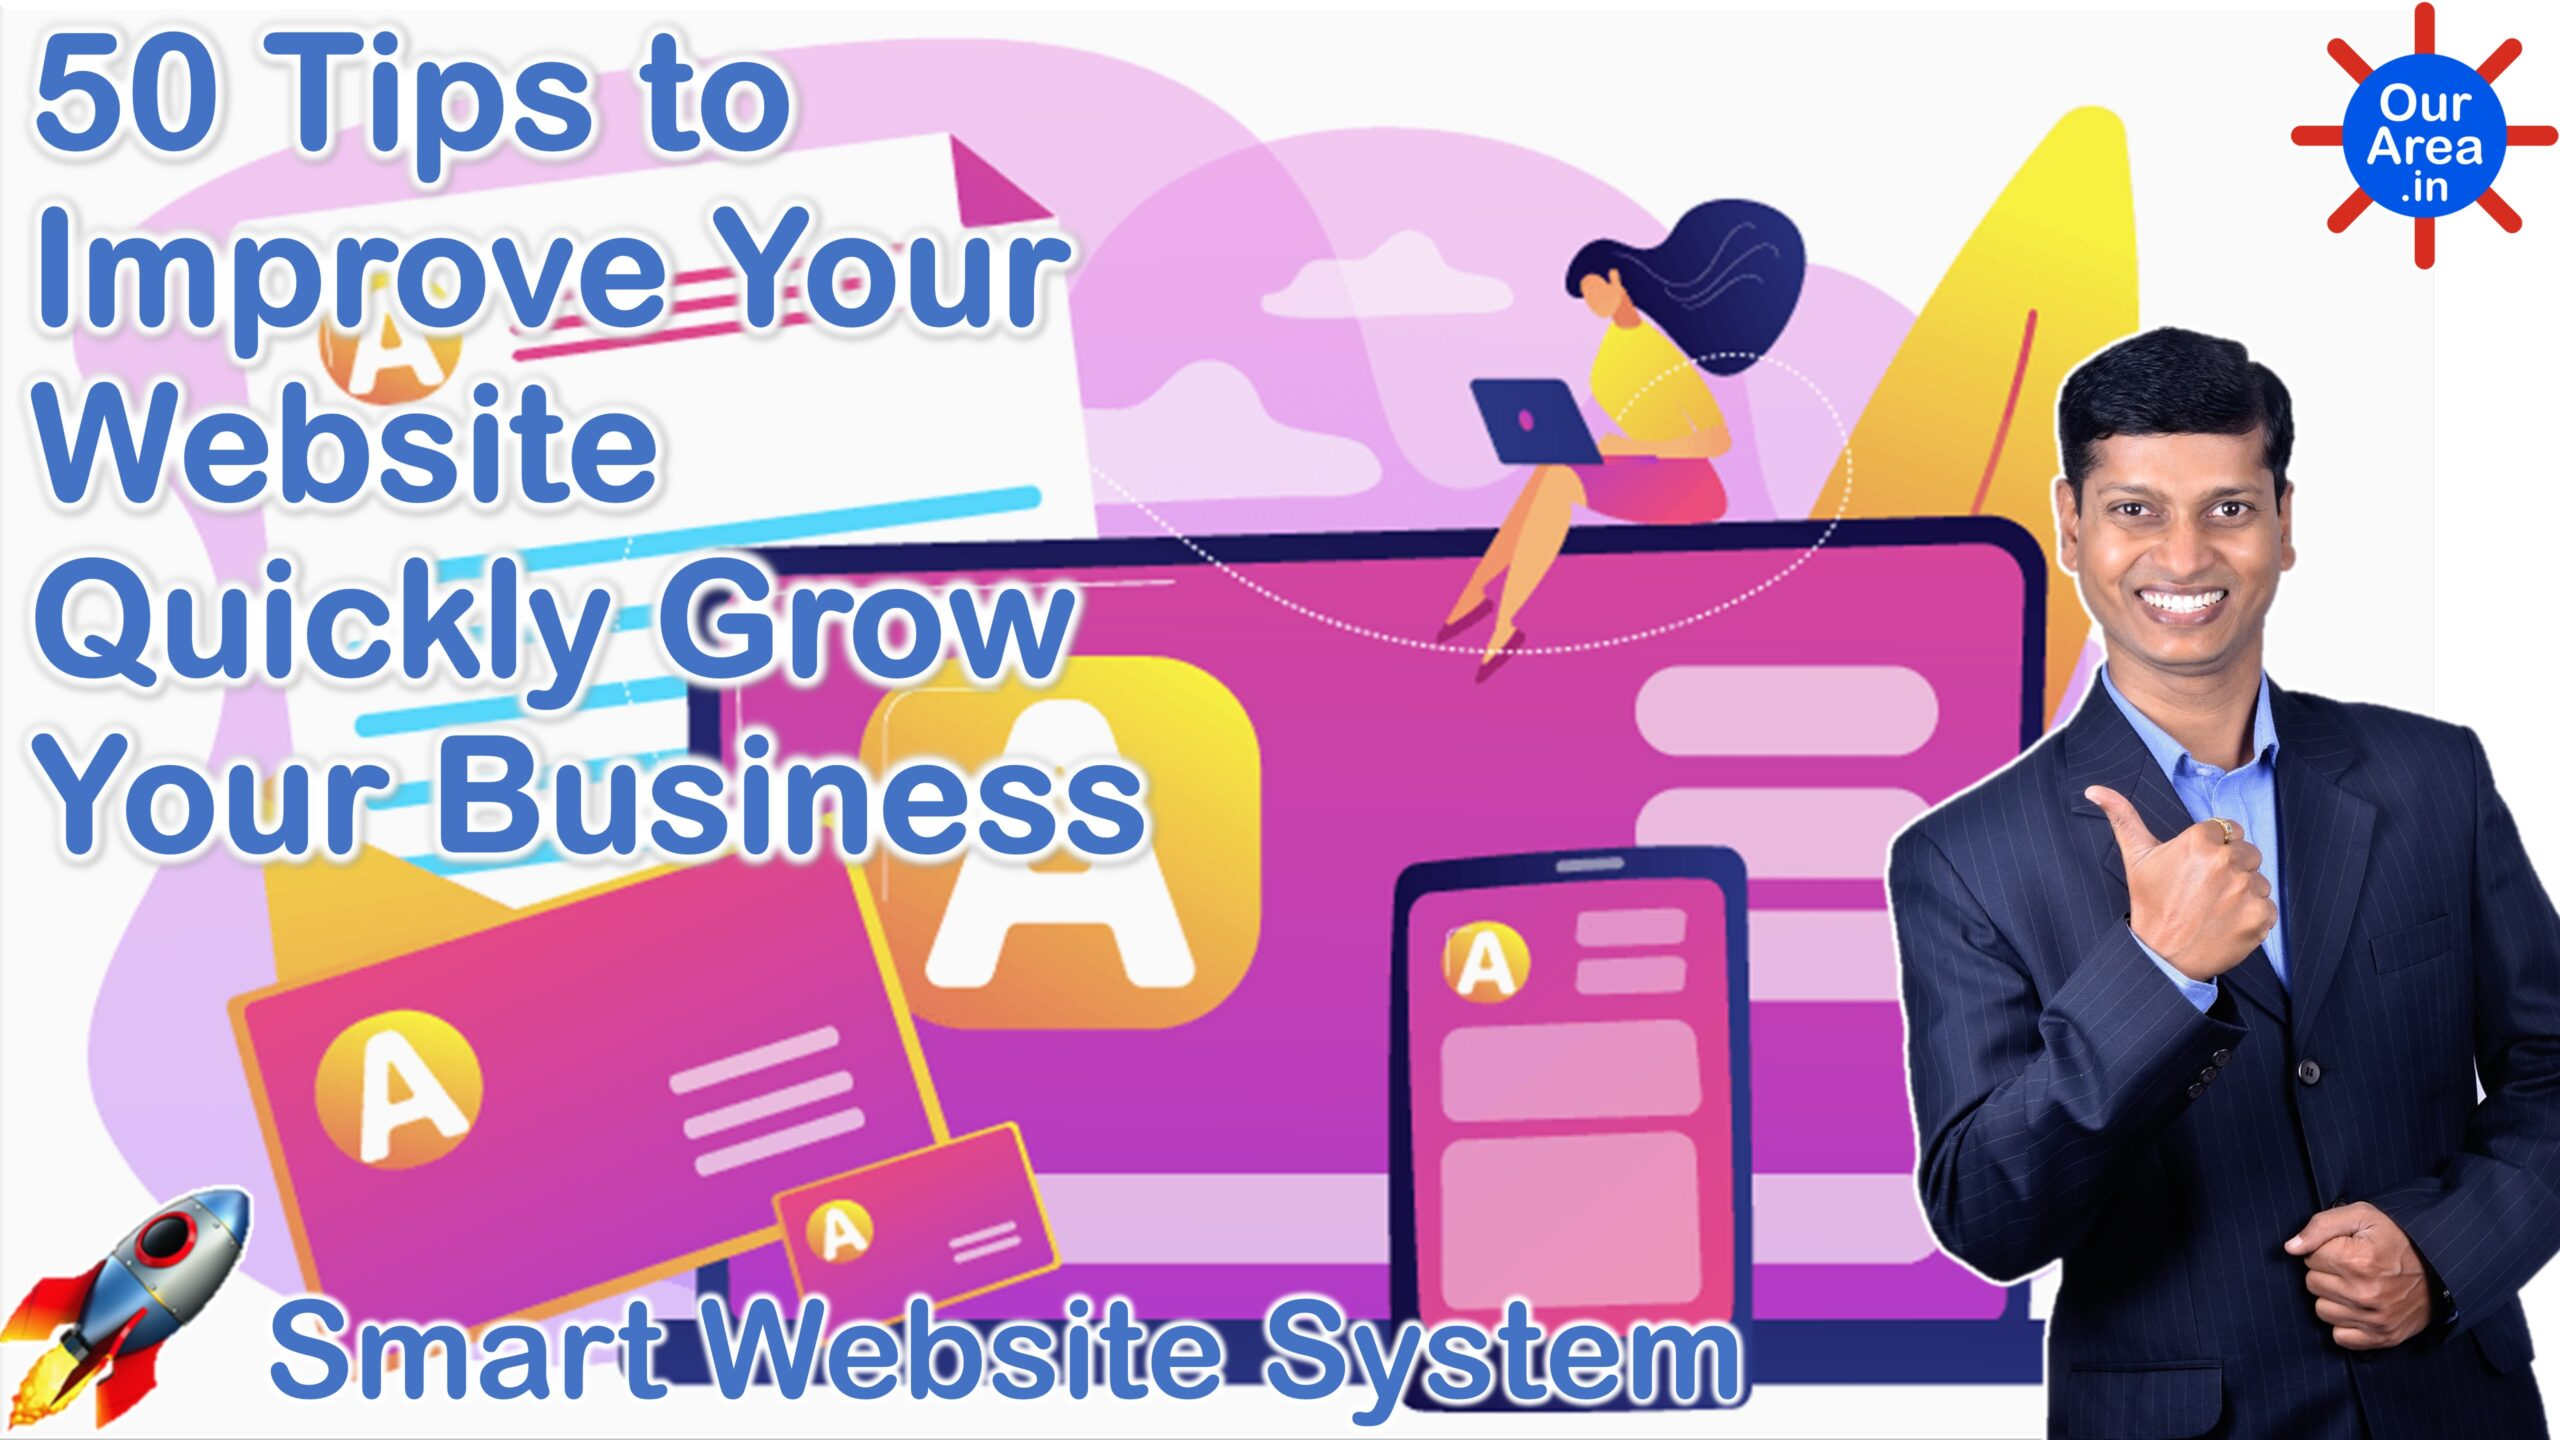 50 Tips to Improve Your Website Quickly Grow Your Business